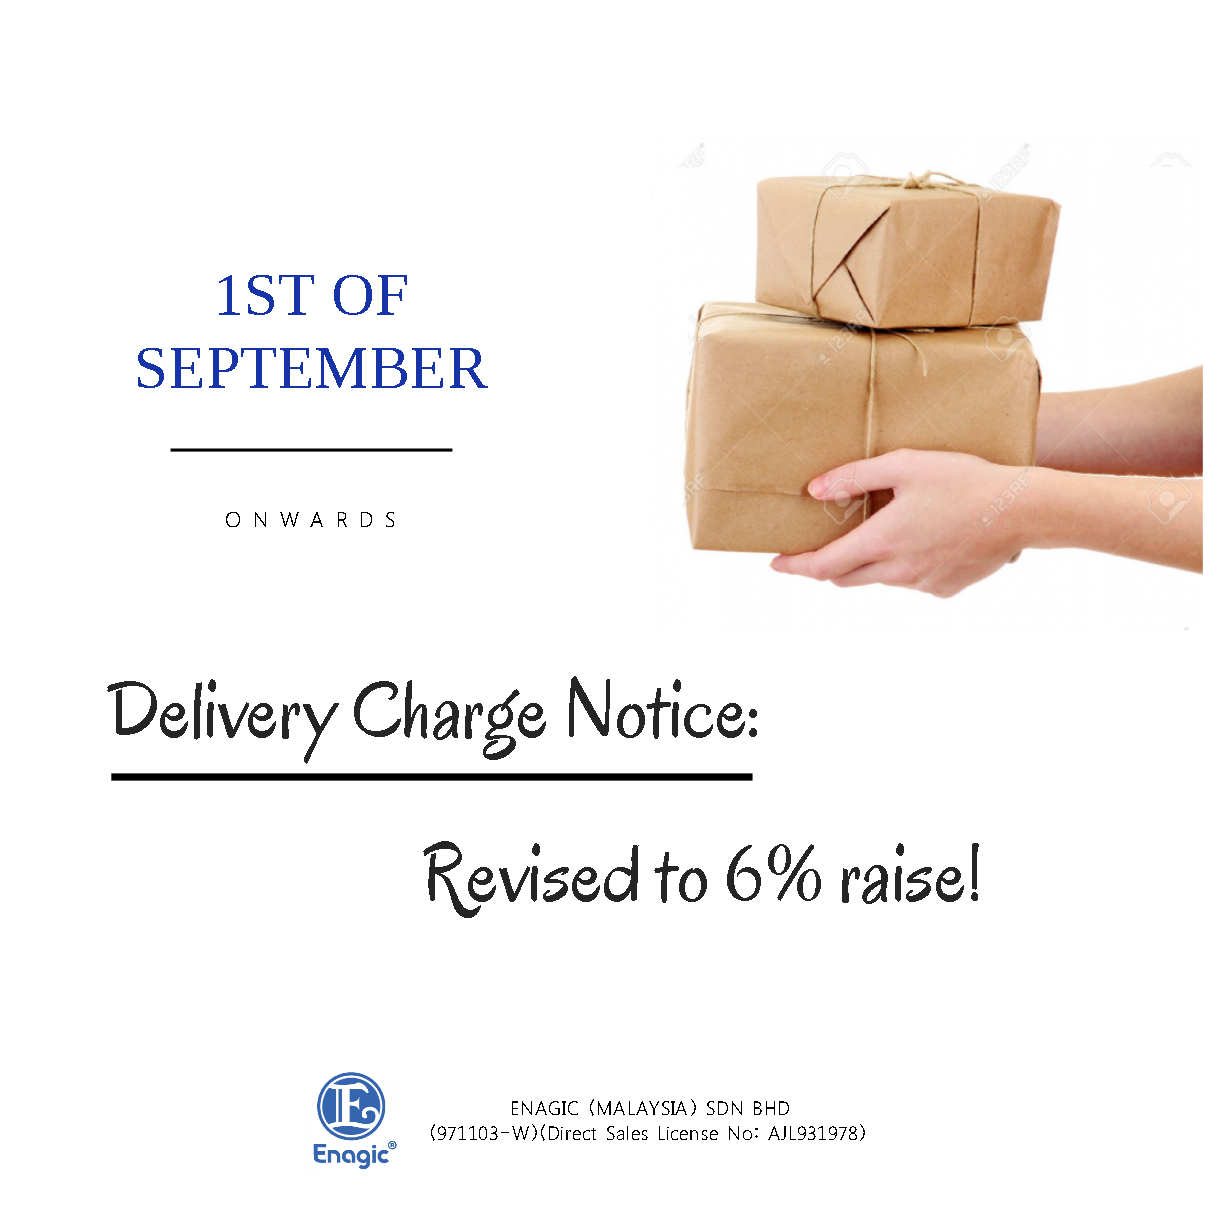 NOTICE: Delivery Charge